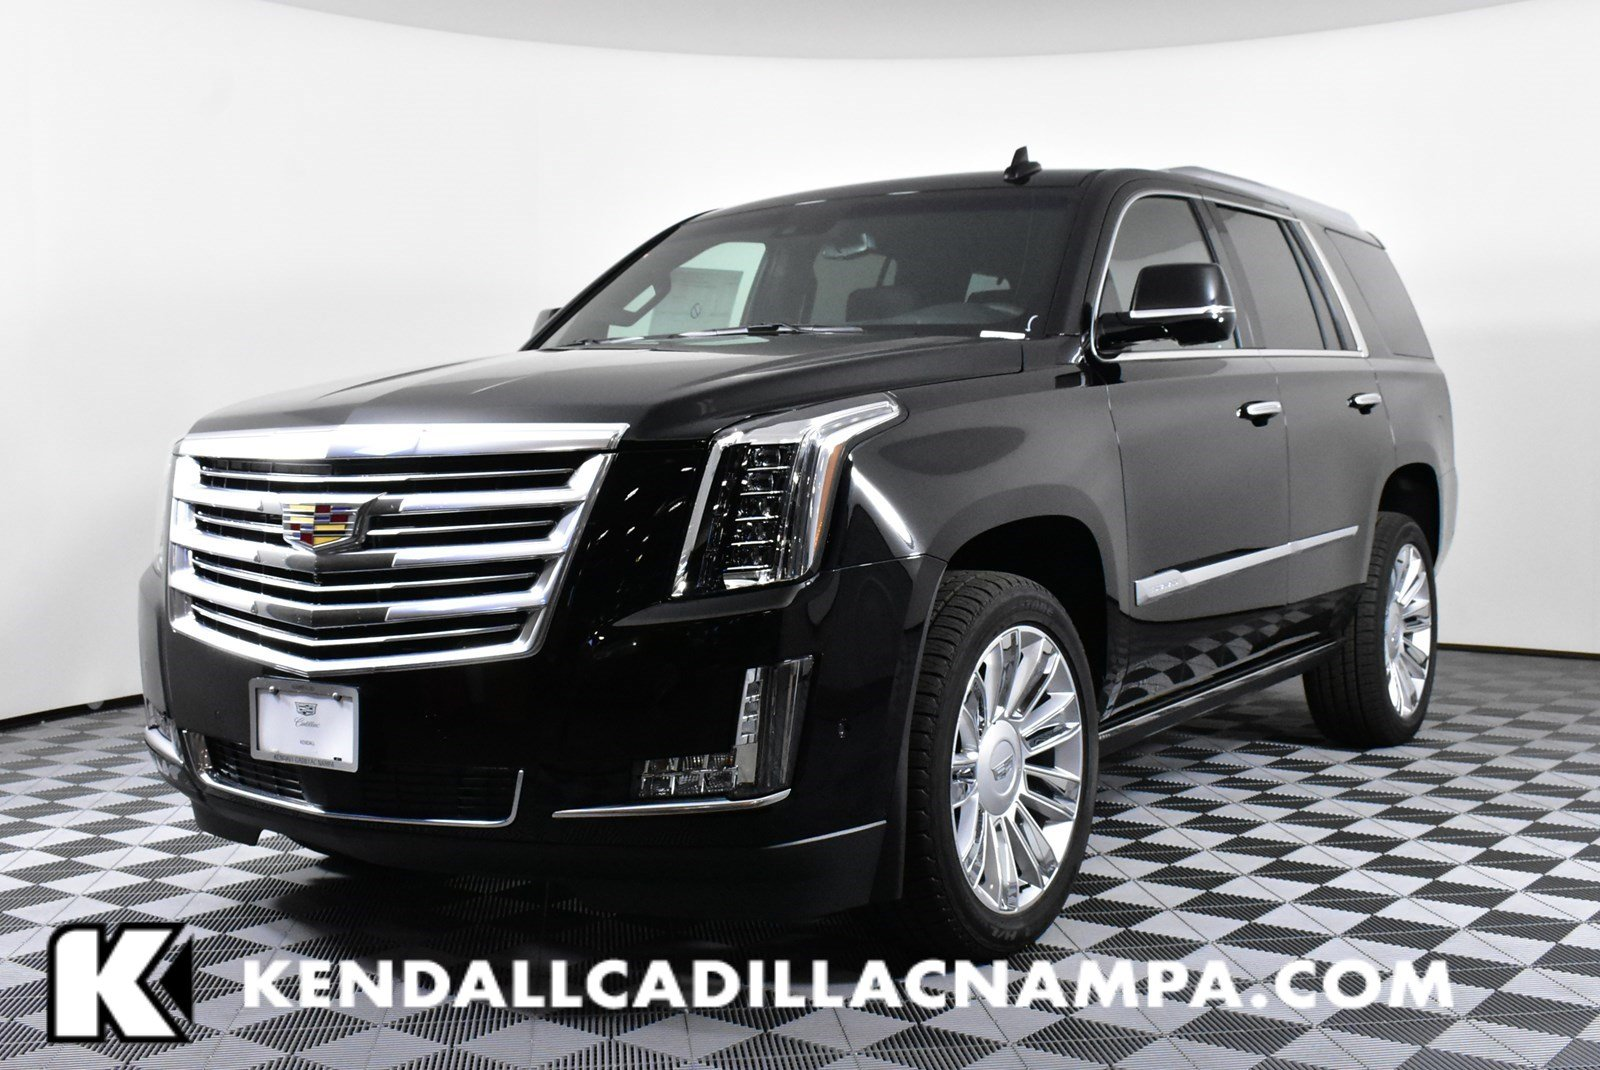 New 2018 Cadillac Escalade Platinum 4WD